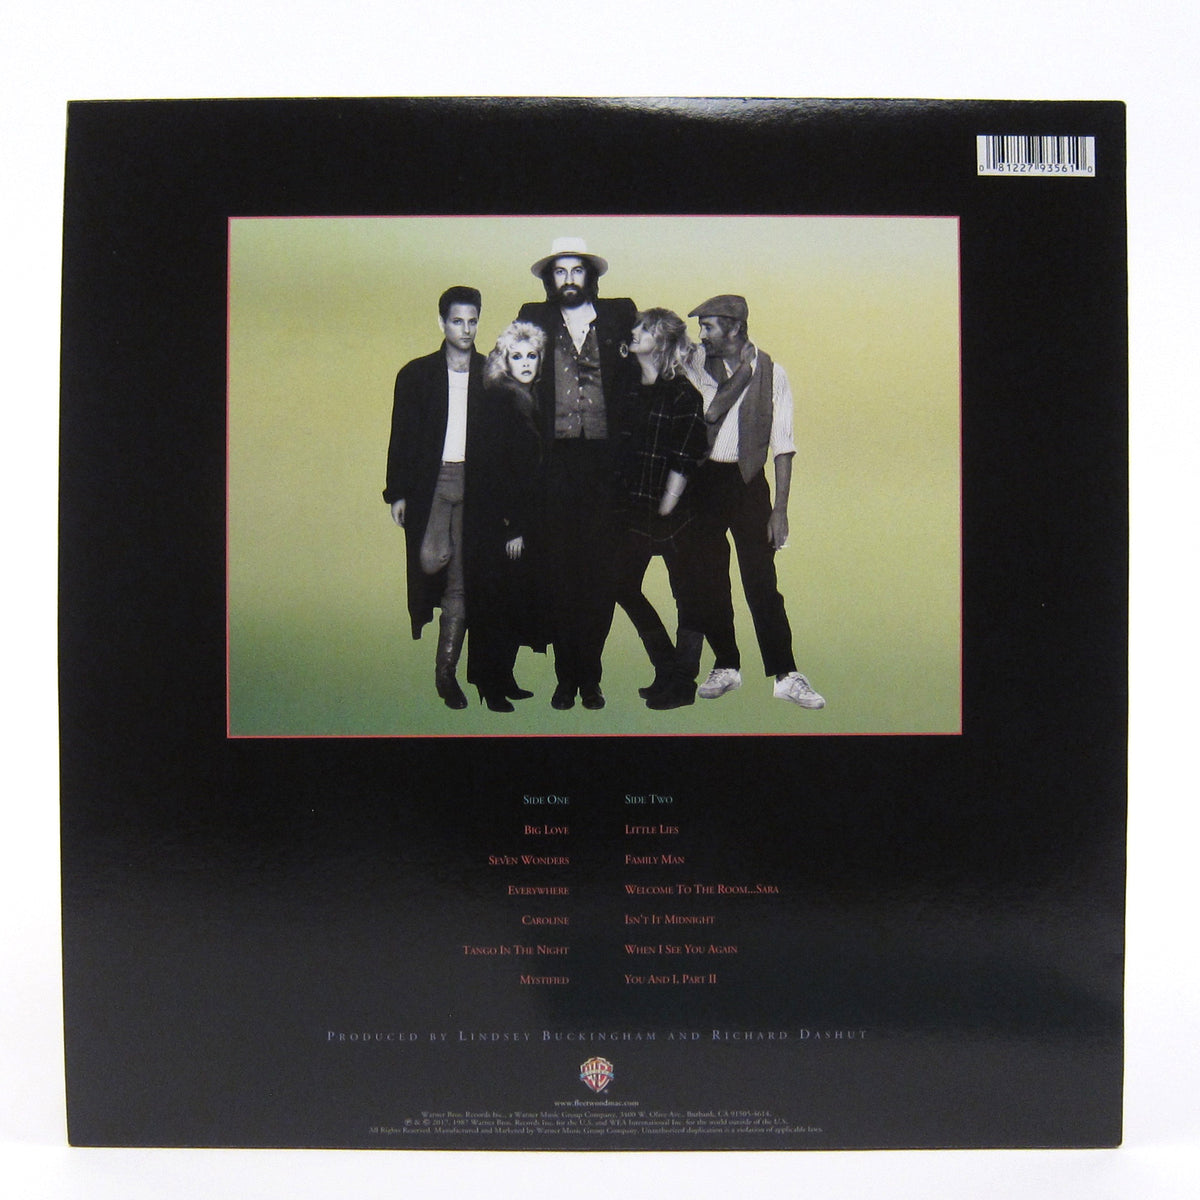 Fleetwood Mac: Tango In The Night (180g) Vinyl LP